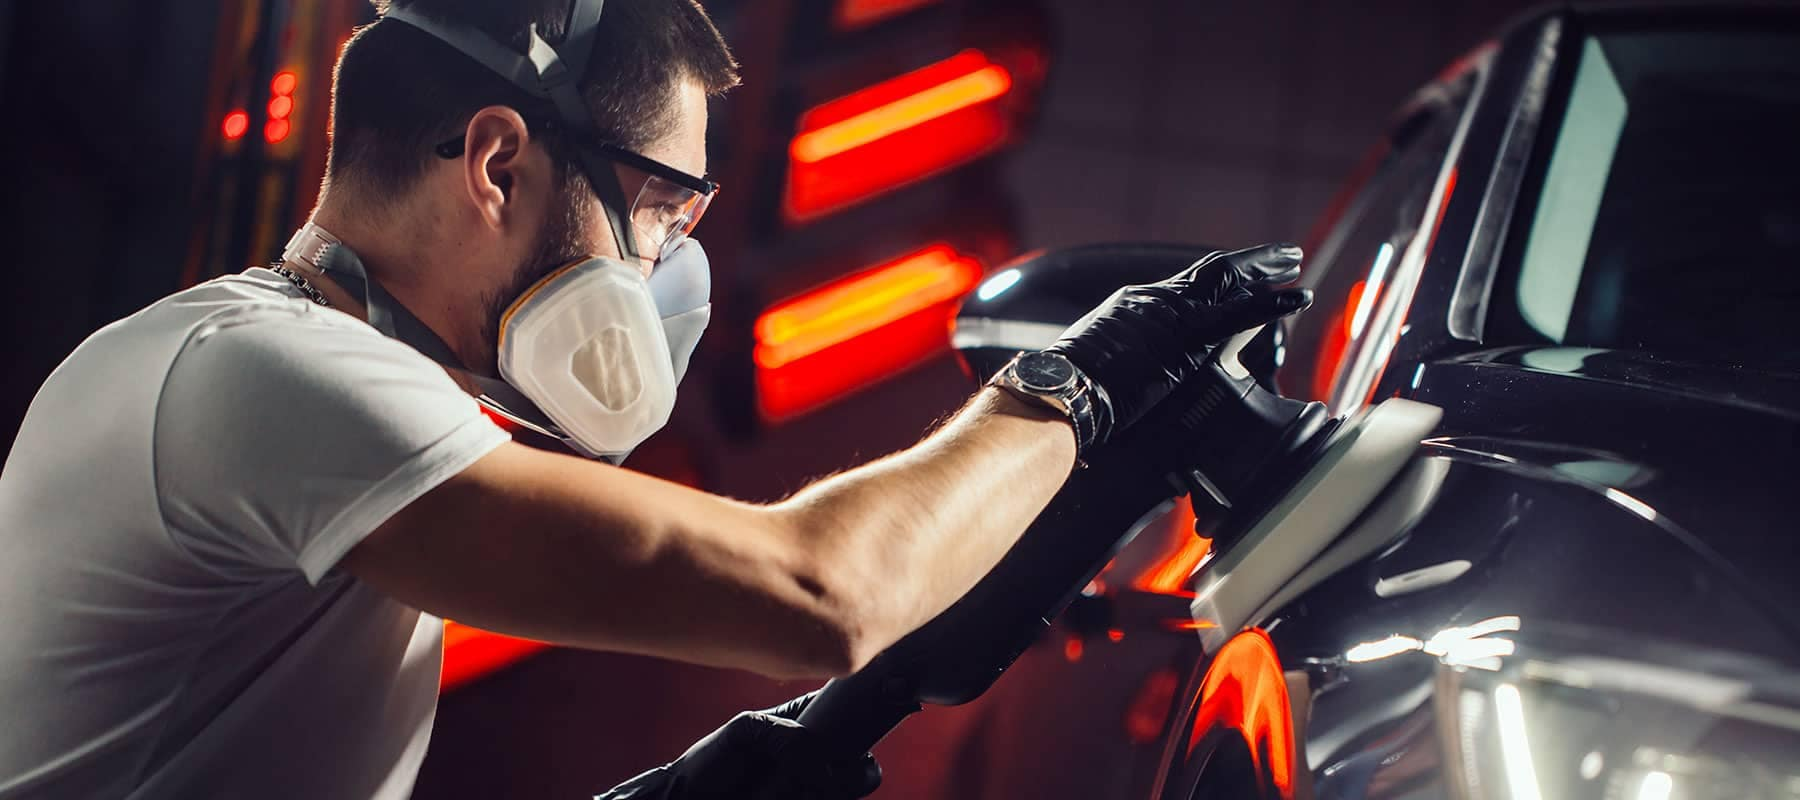 Man buffing a car with a respirator on